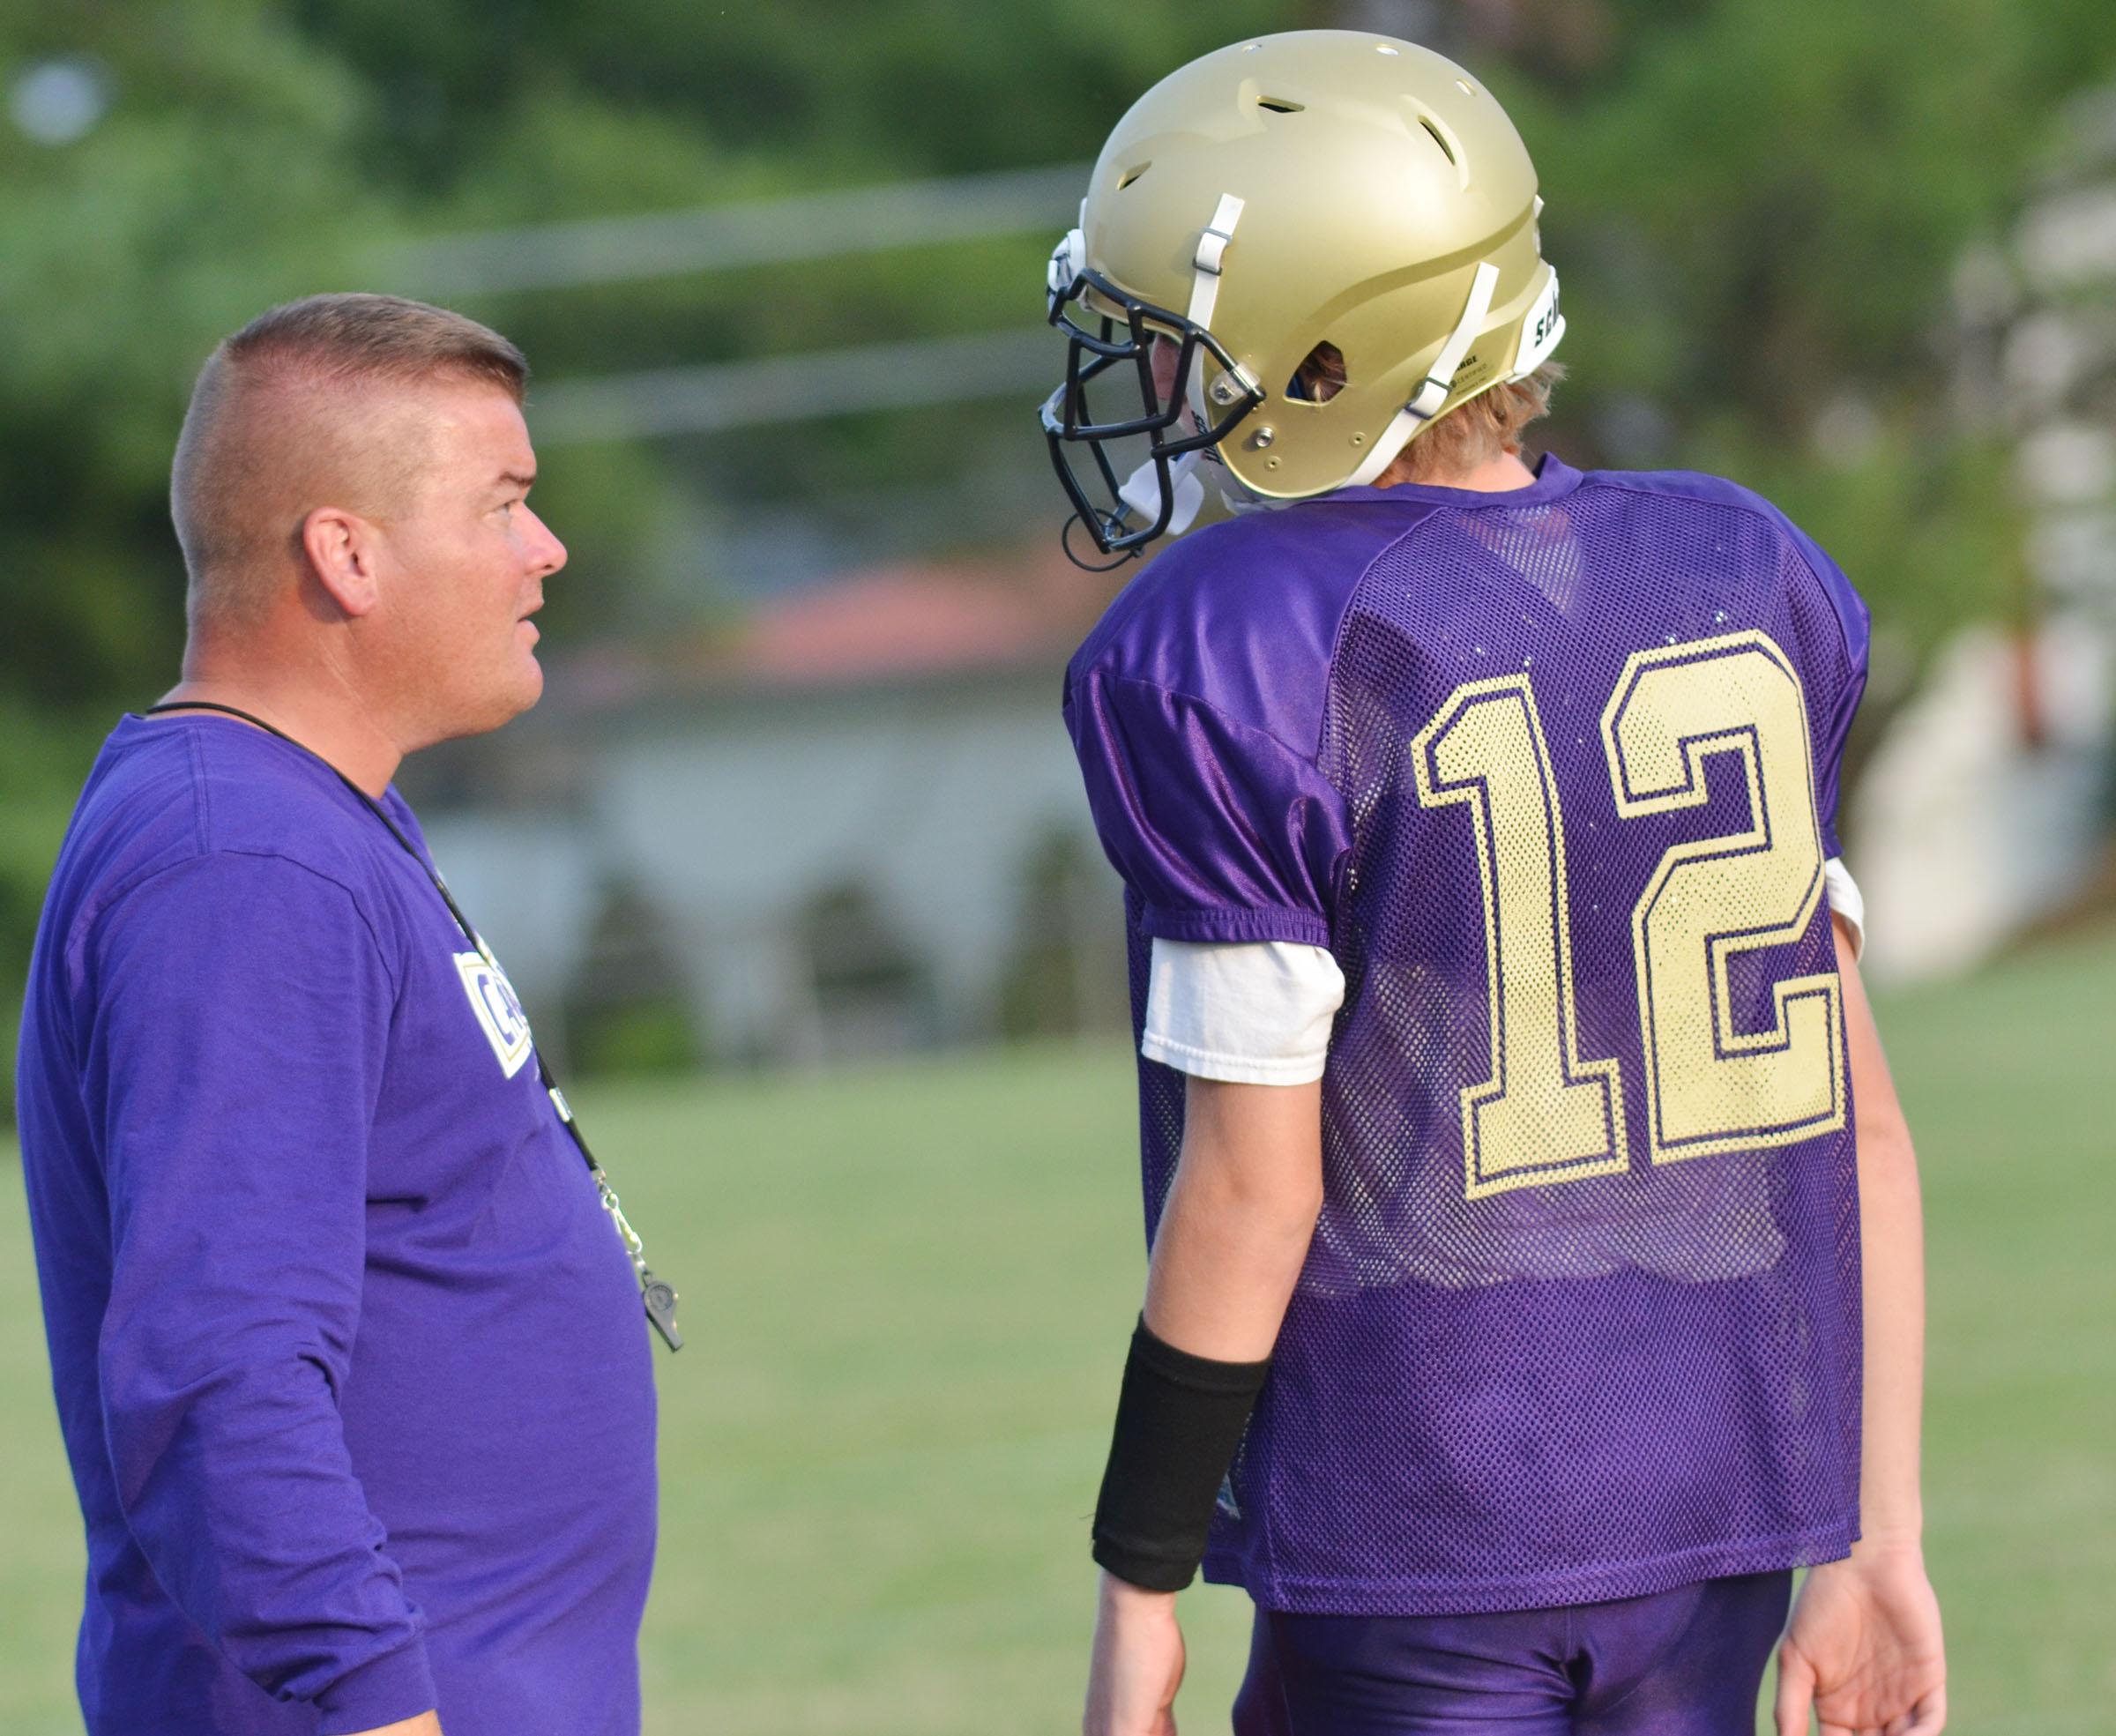 CHS head football coach Dale Estes talks to quarterback Arren Hash, a freshman.